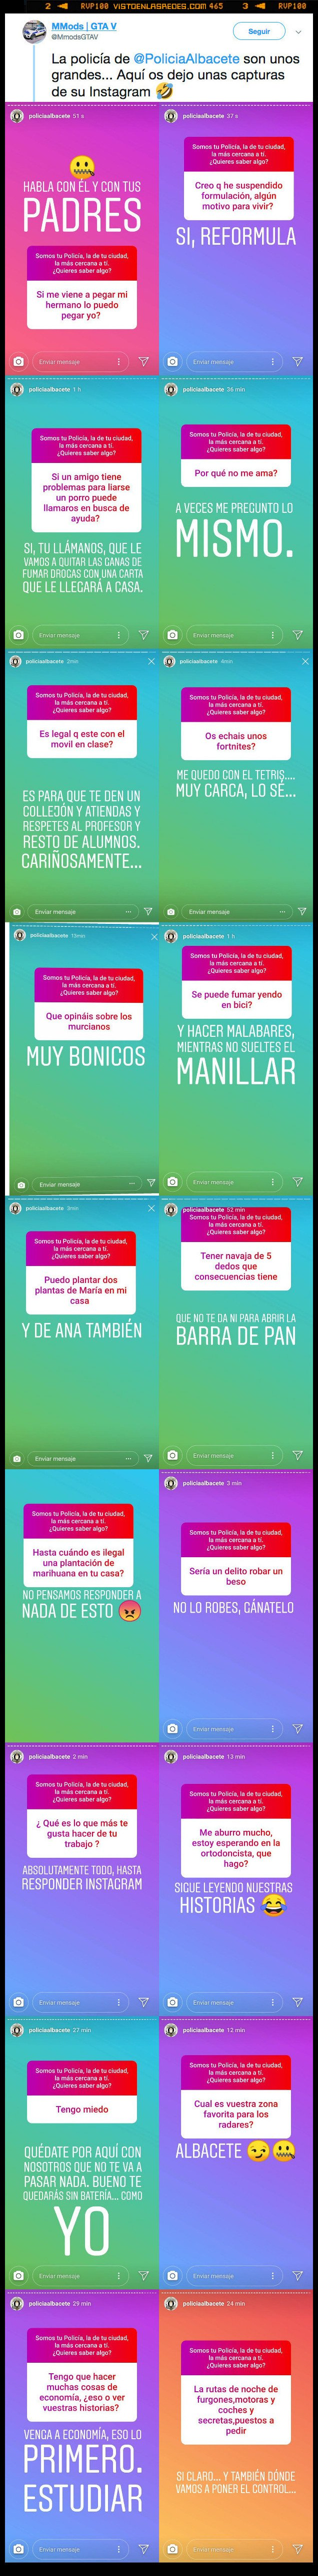 Albacete,Instagram,Policía,policía local,stories,Twitter